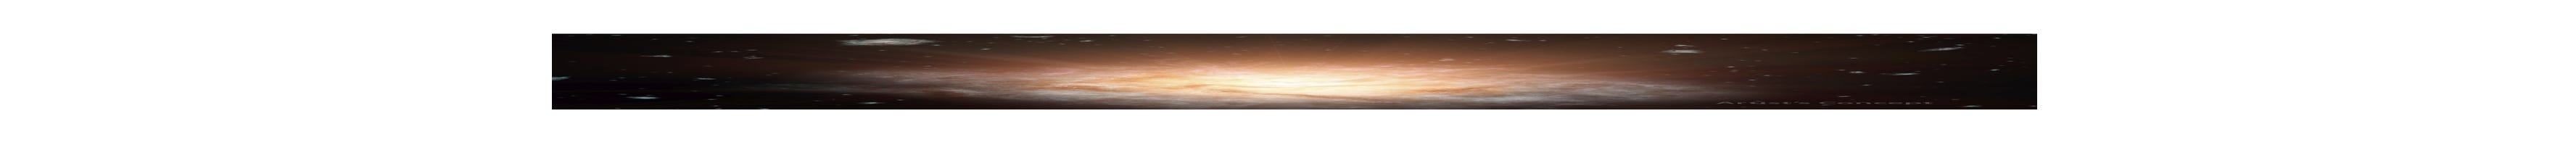 Most 'luminous' galaxy in the